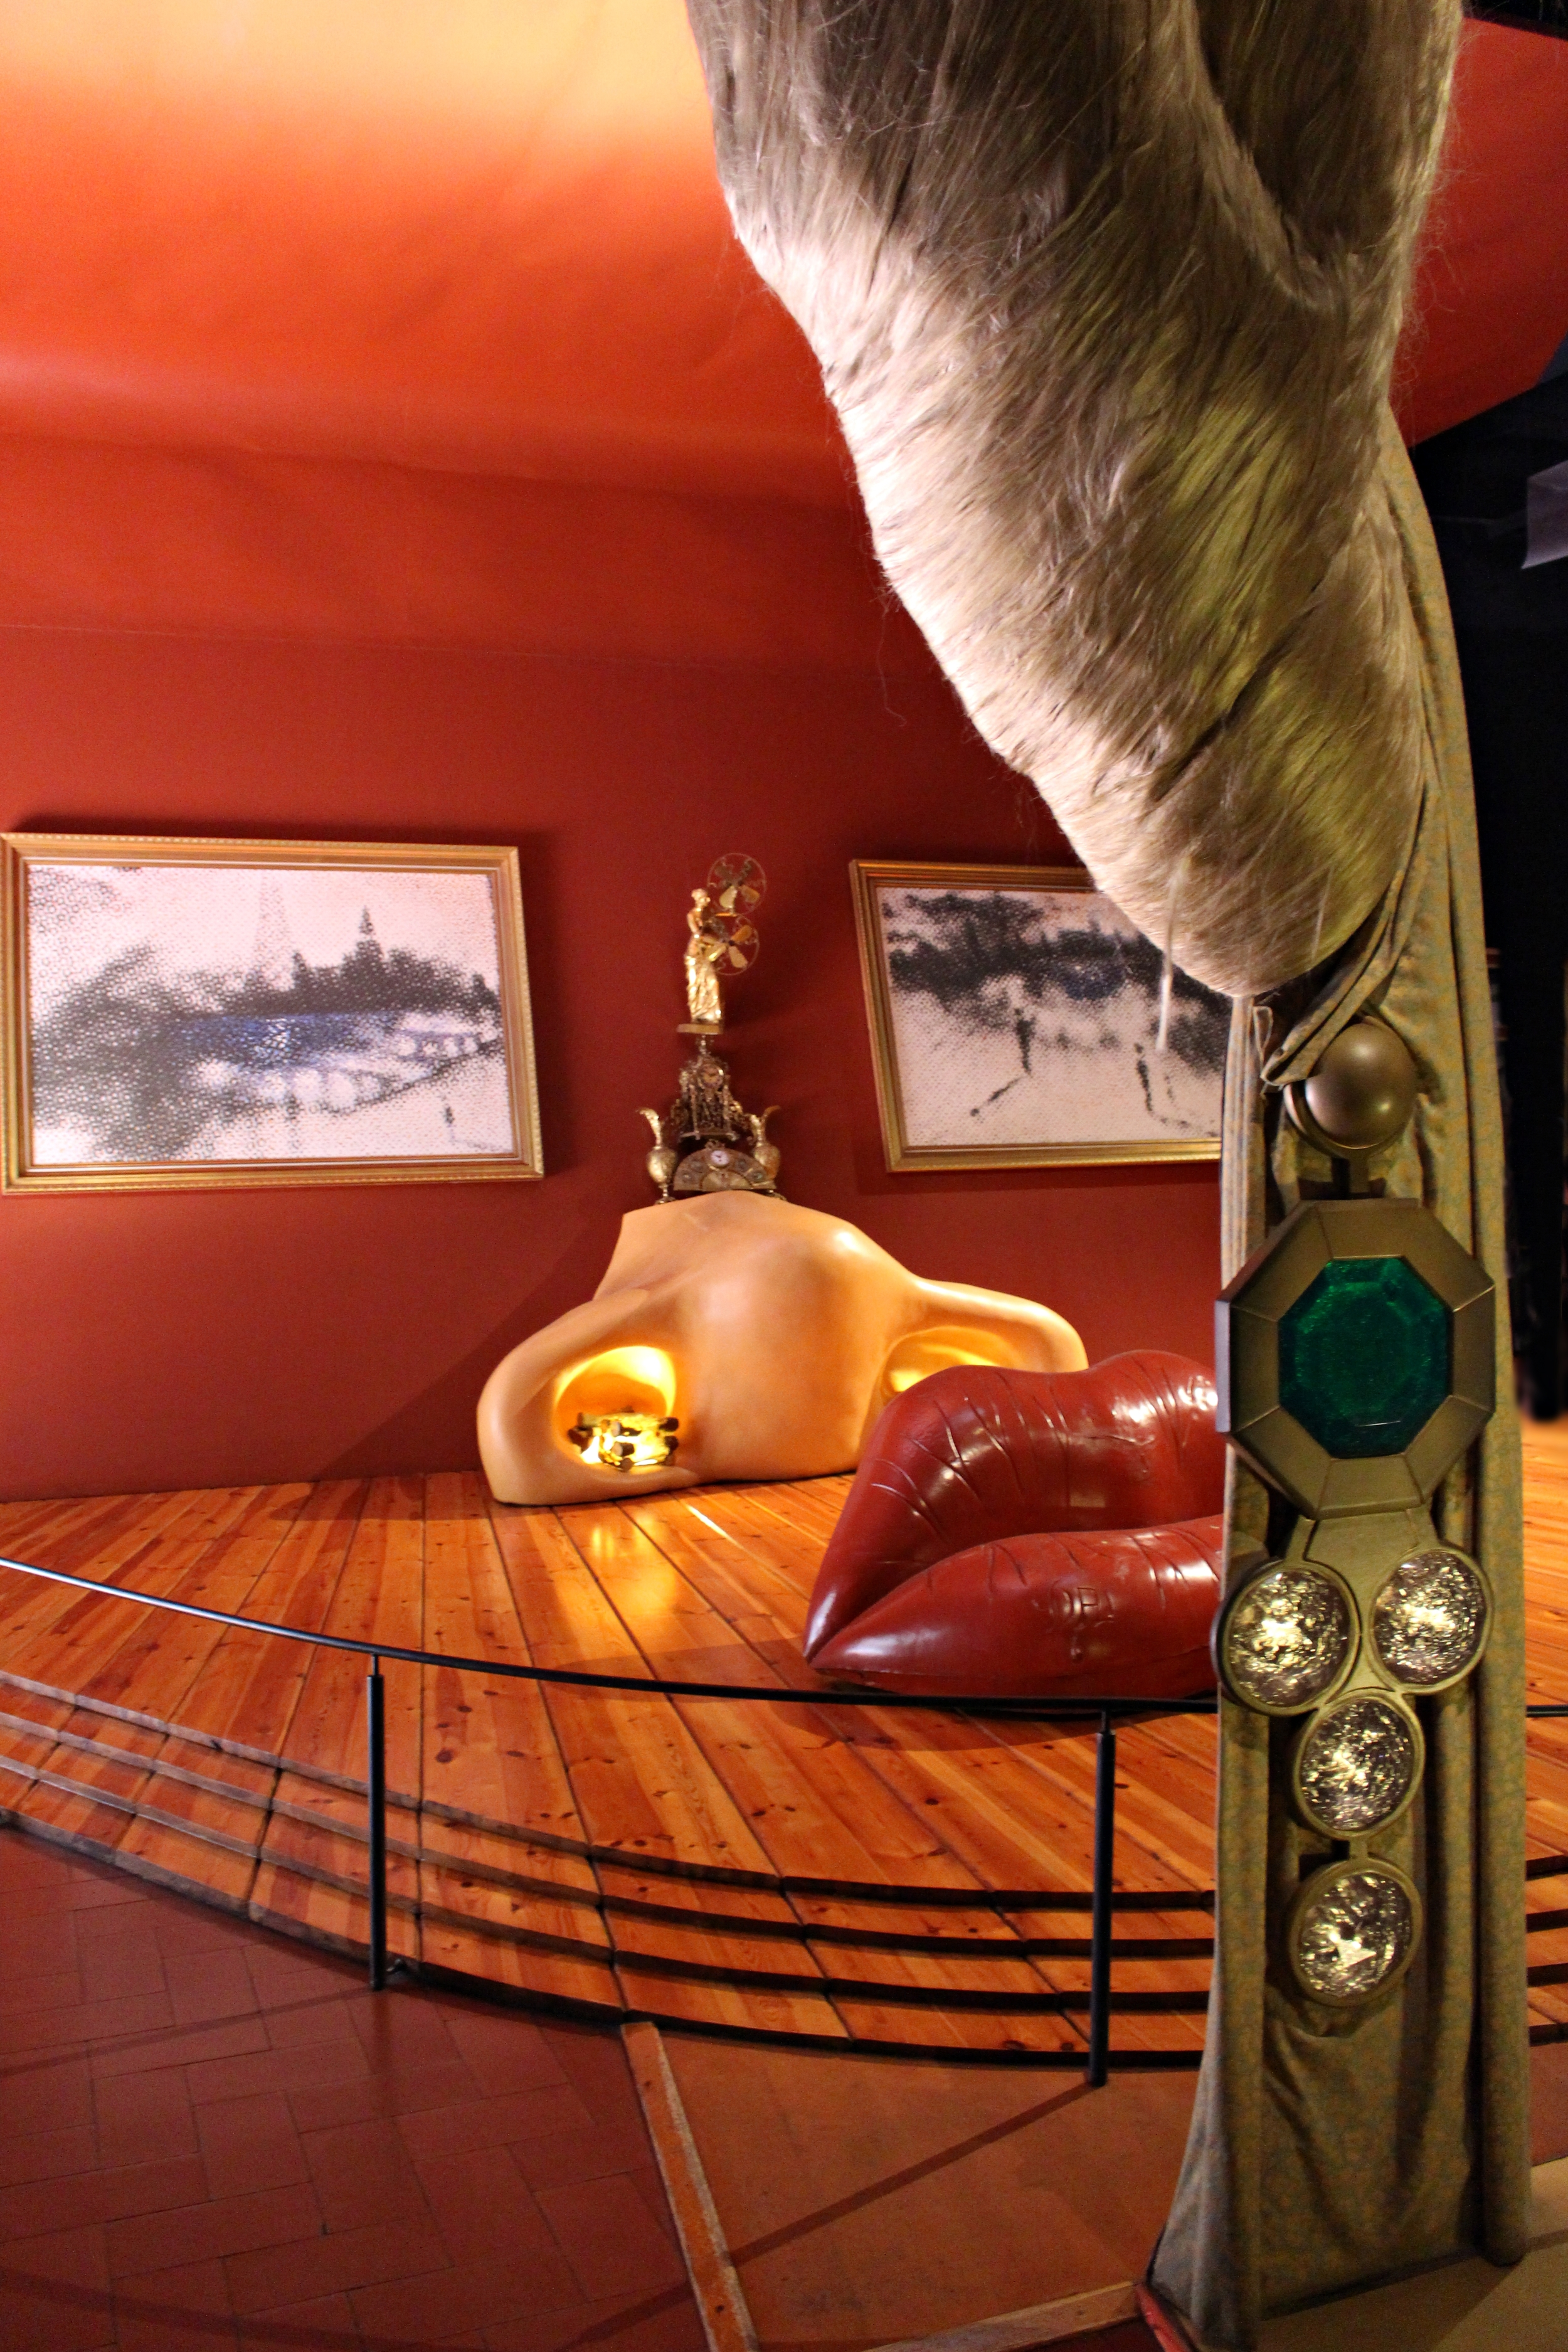 The Mae West Room from a side angle